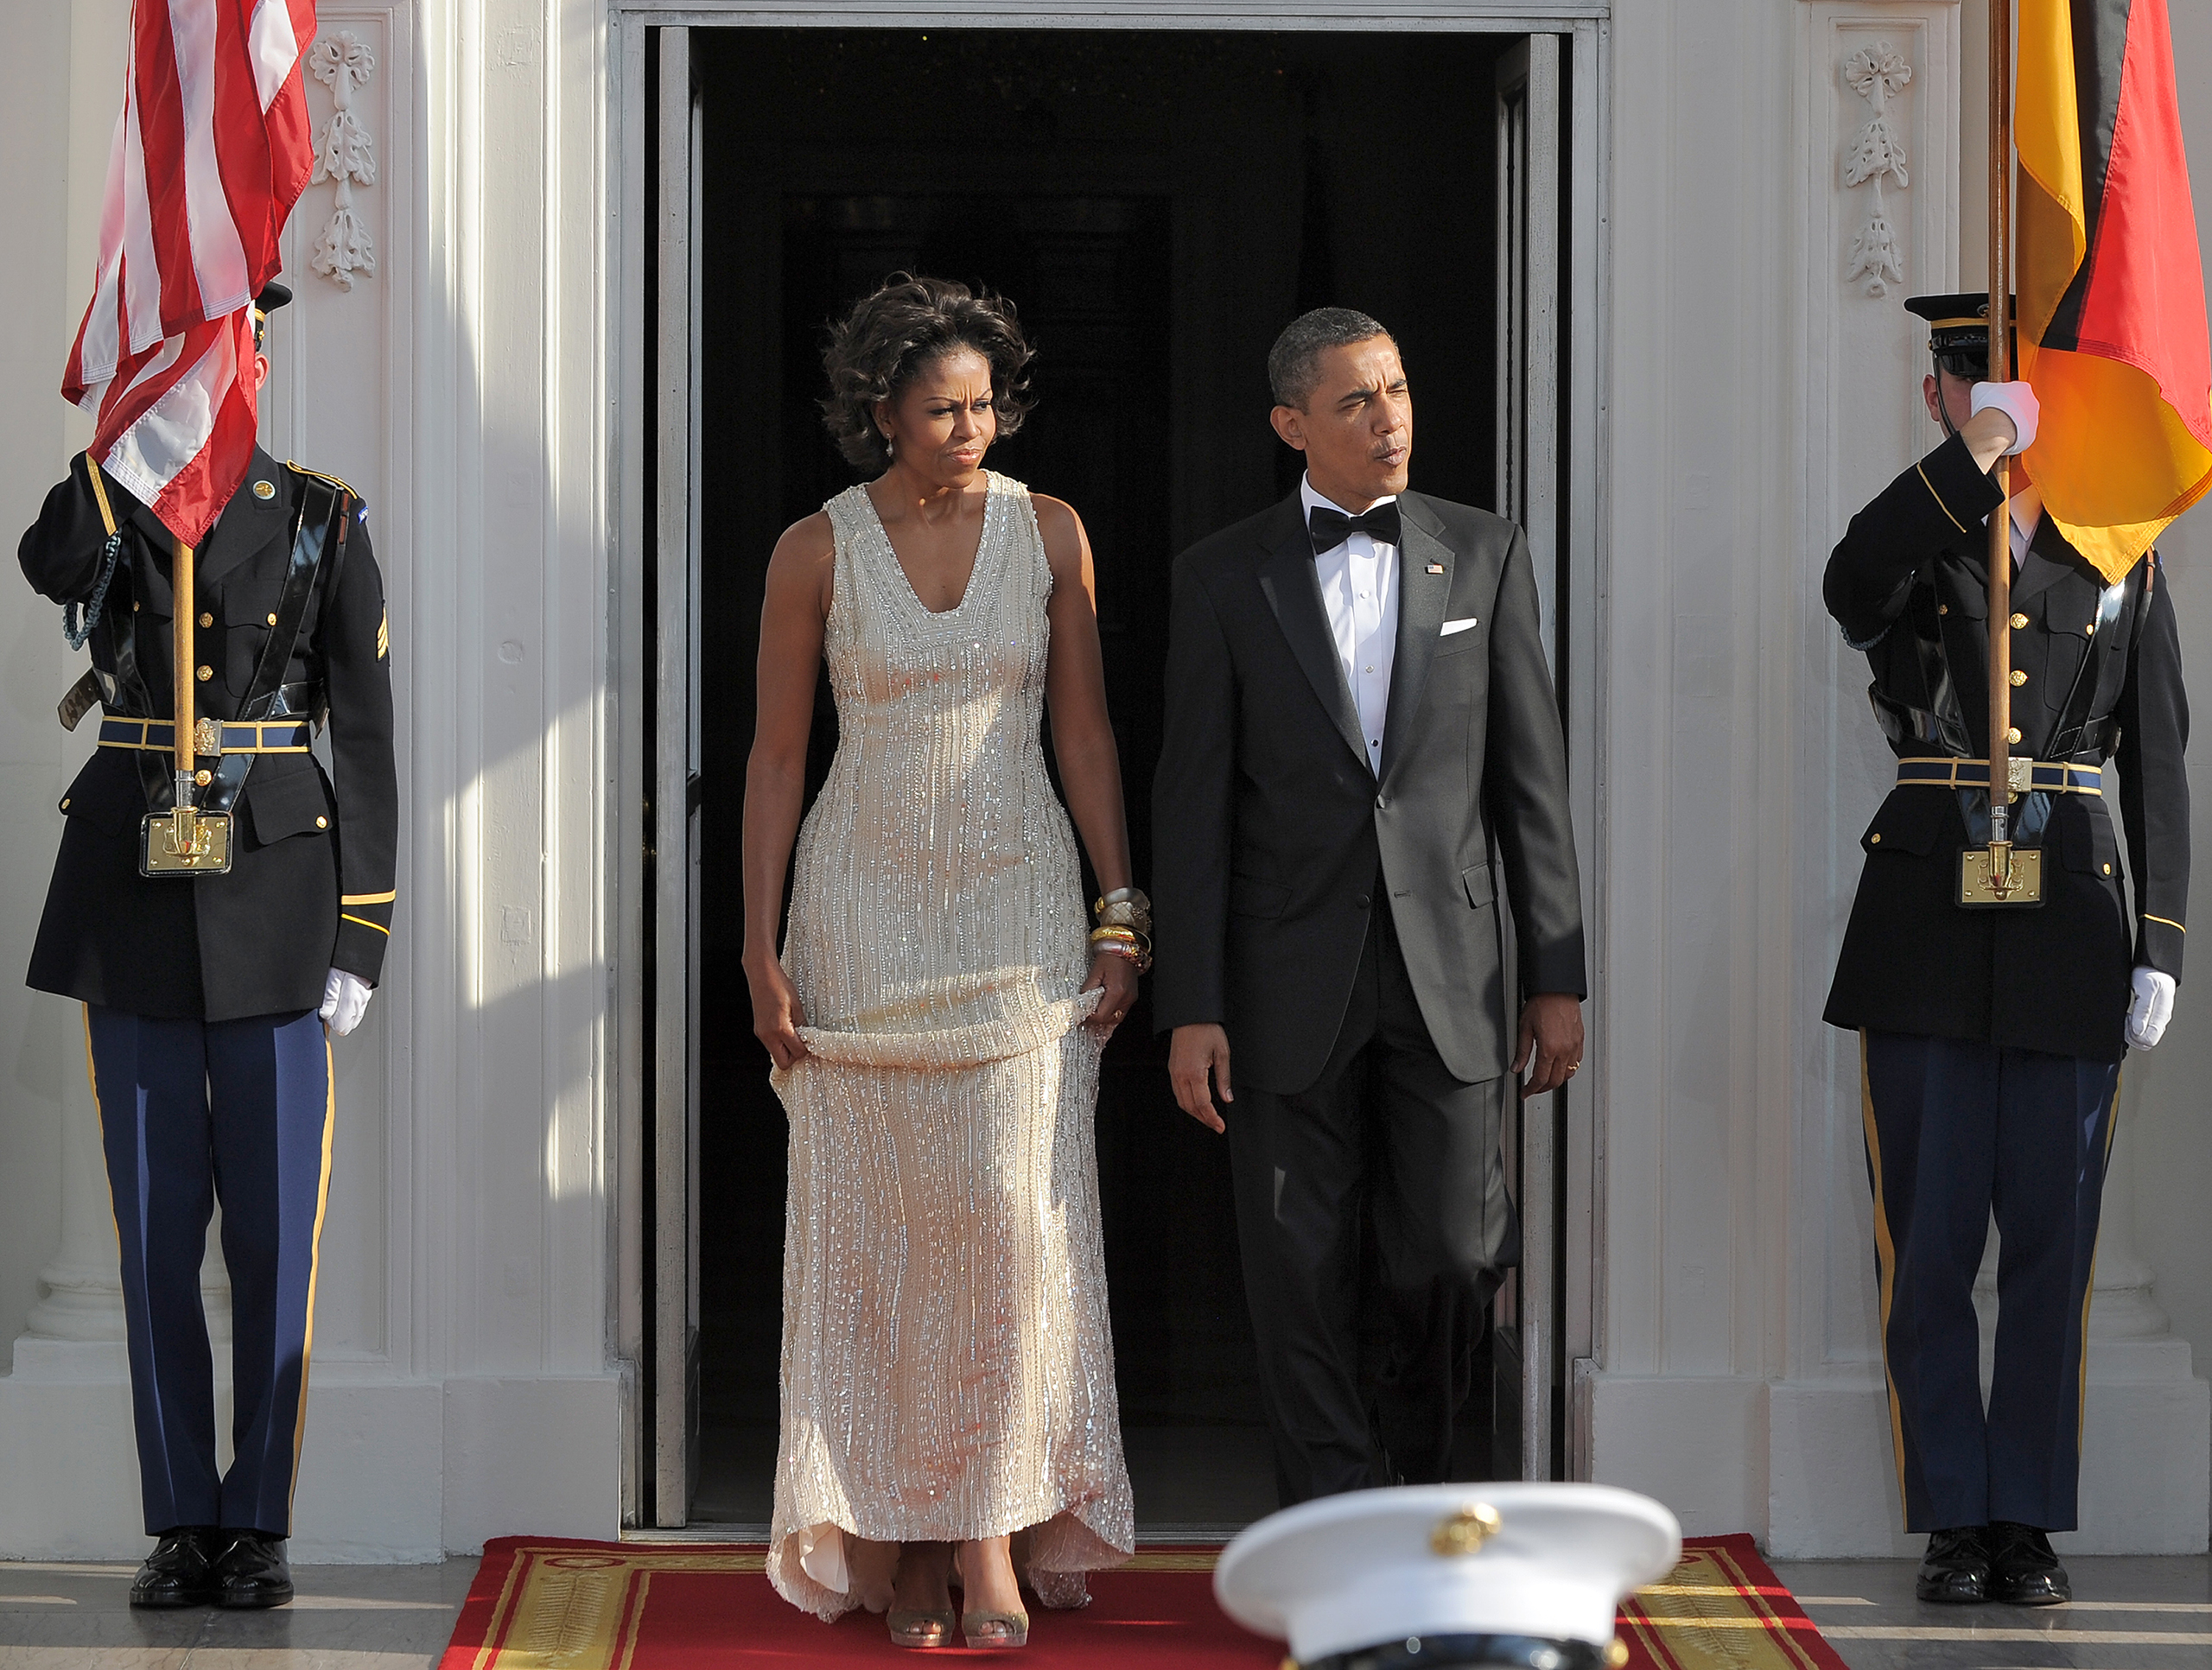 Barack Obama (R) and  Michelle Obama arrive to greet German Chancellor Angela Merkel and her husband Joachim Sauer (not in picture) at the North Portico of the White House in Washington, D.C., on June 7, 2011.